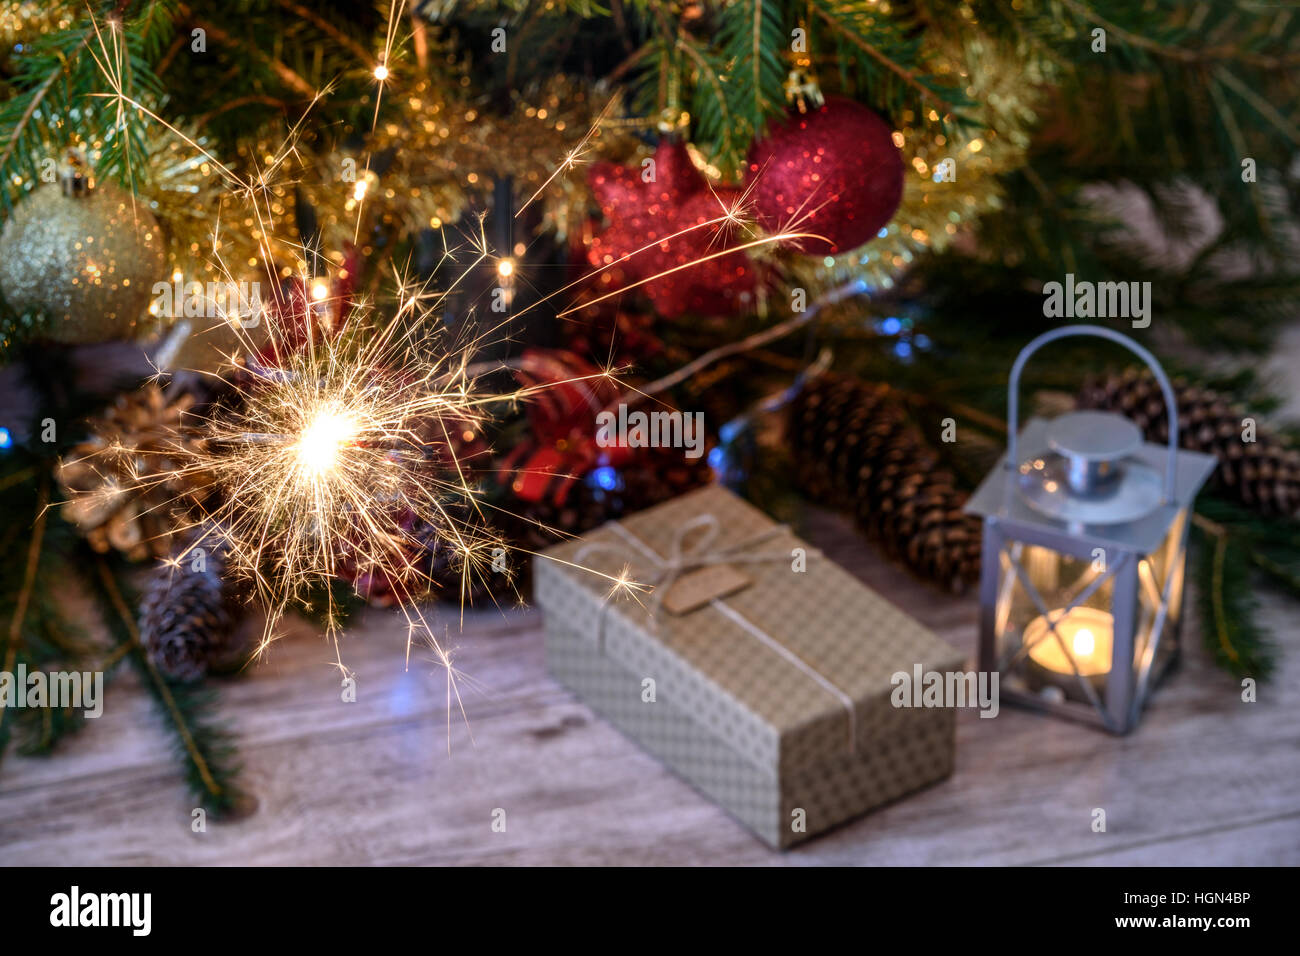 Sparklers and a gift with Christmas tree and lights - Stock Image